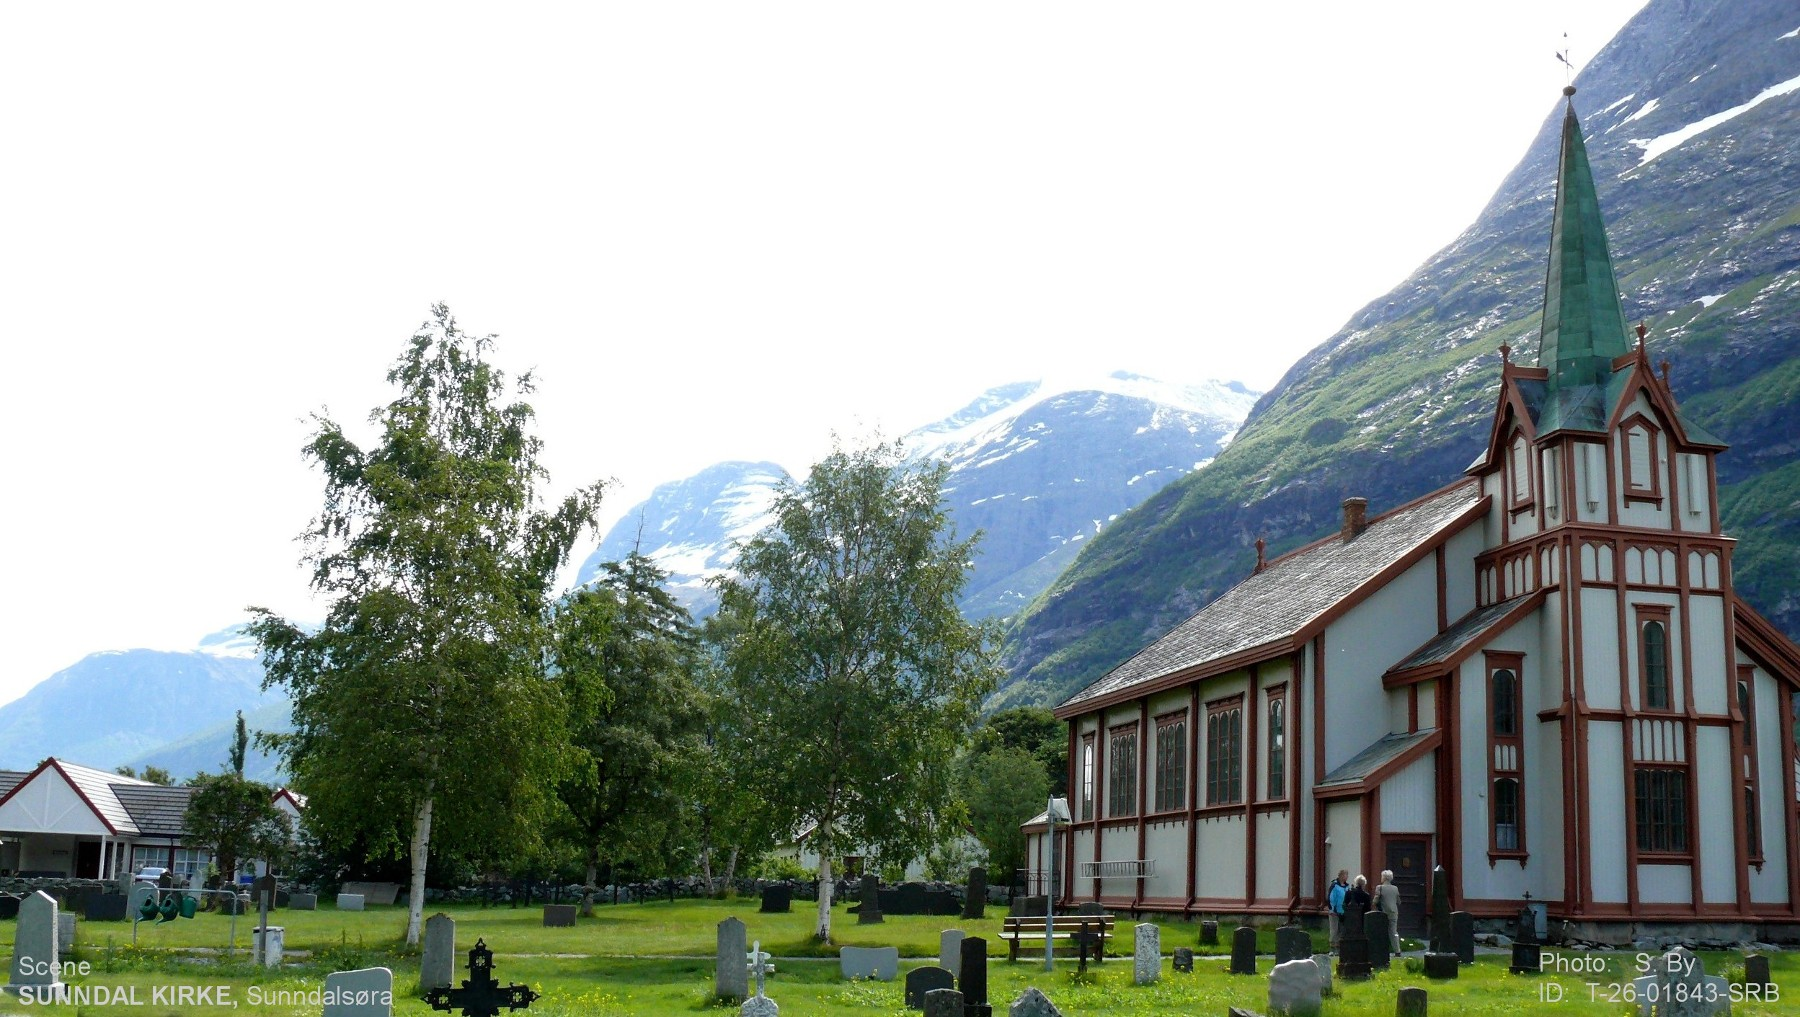 sunndal single guys - rent from people in sunndalsøra, norway from £15/night find unique places to stay with local hosts in 191 countries belong anywhere with airbnb.